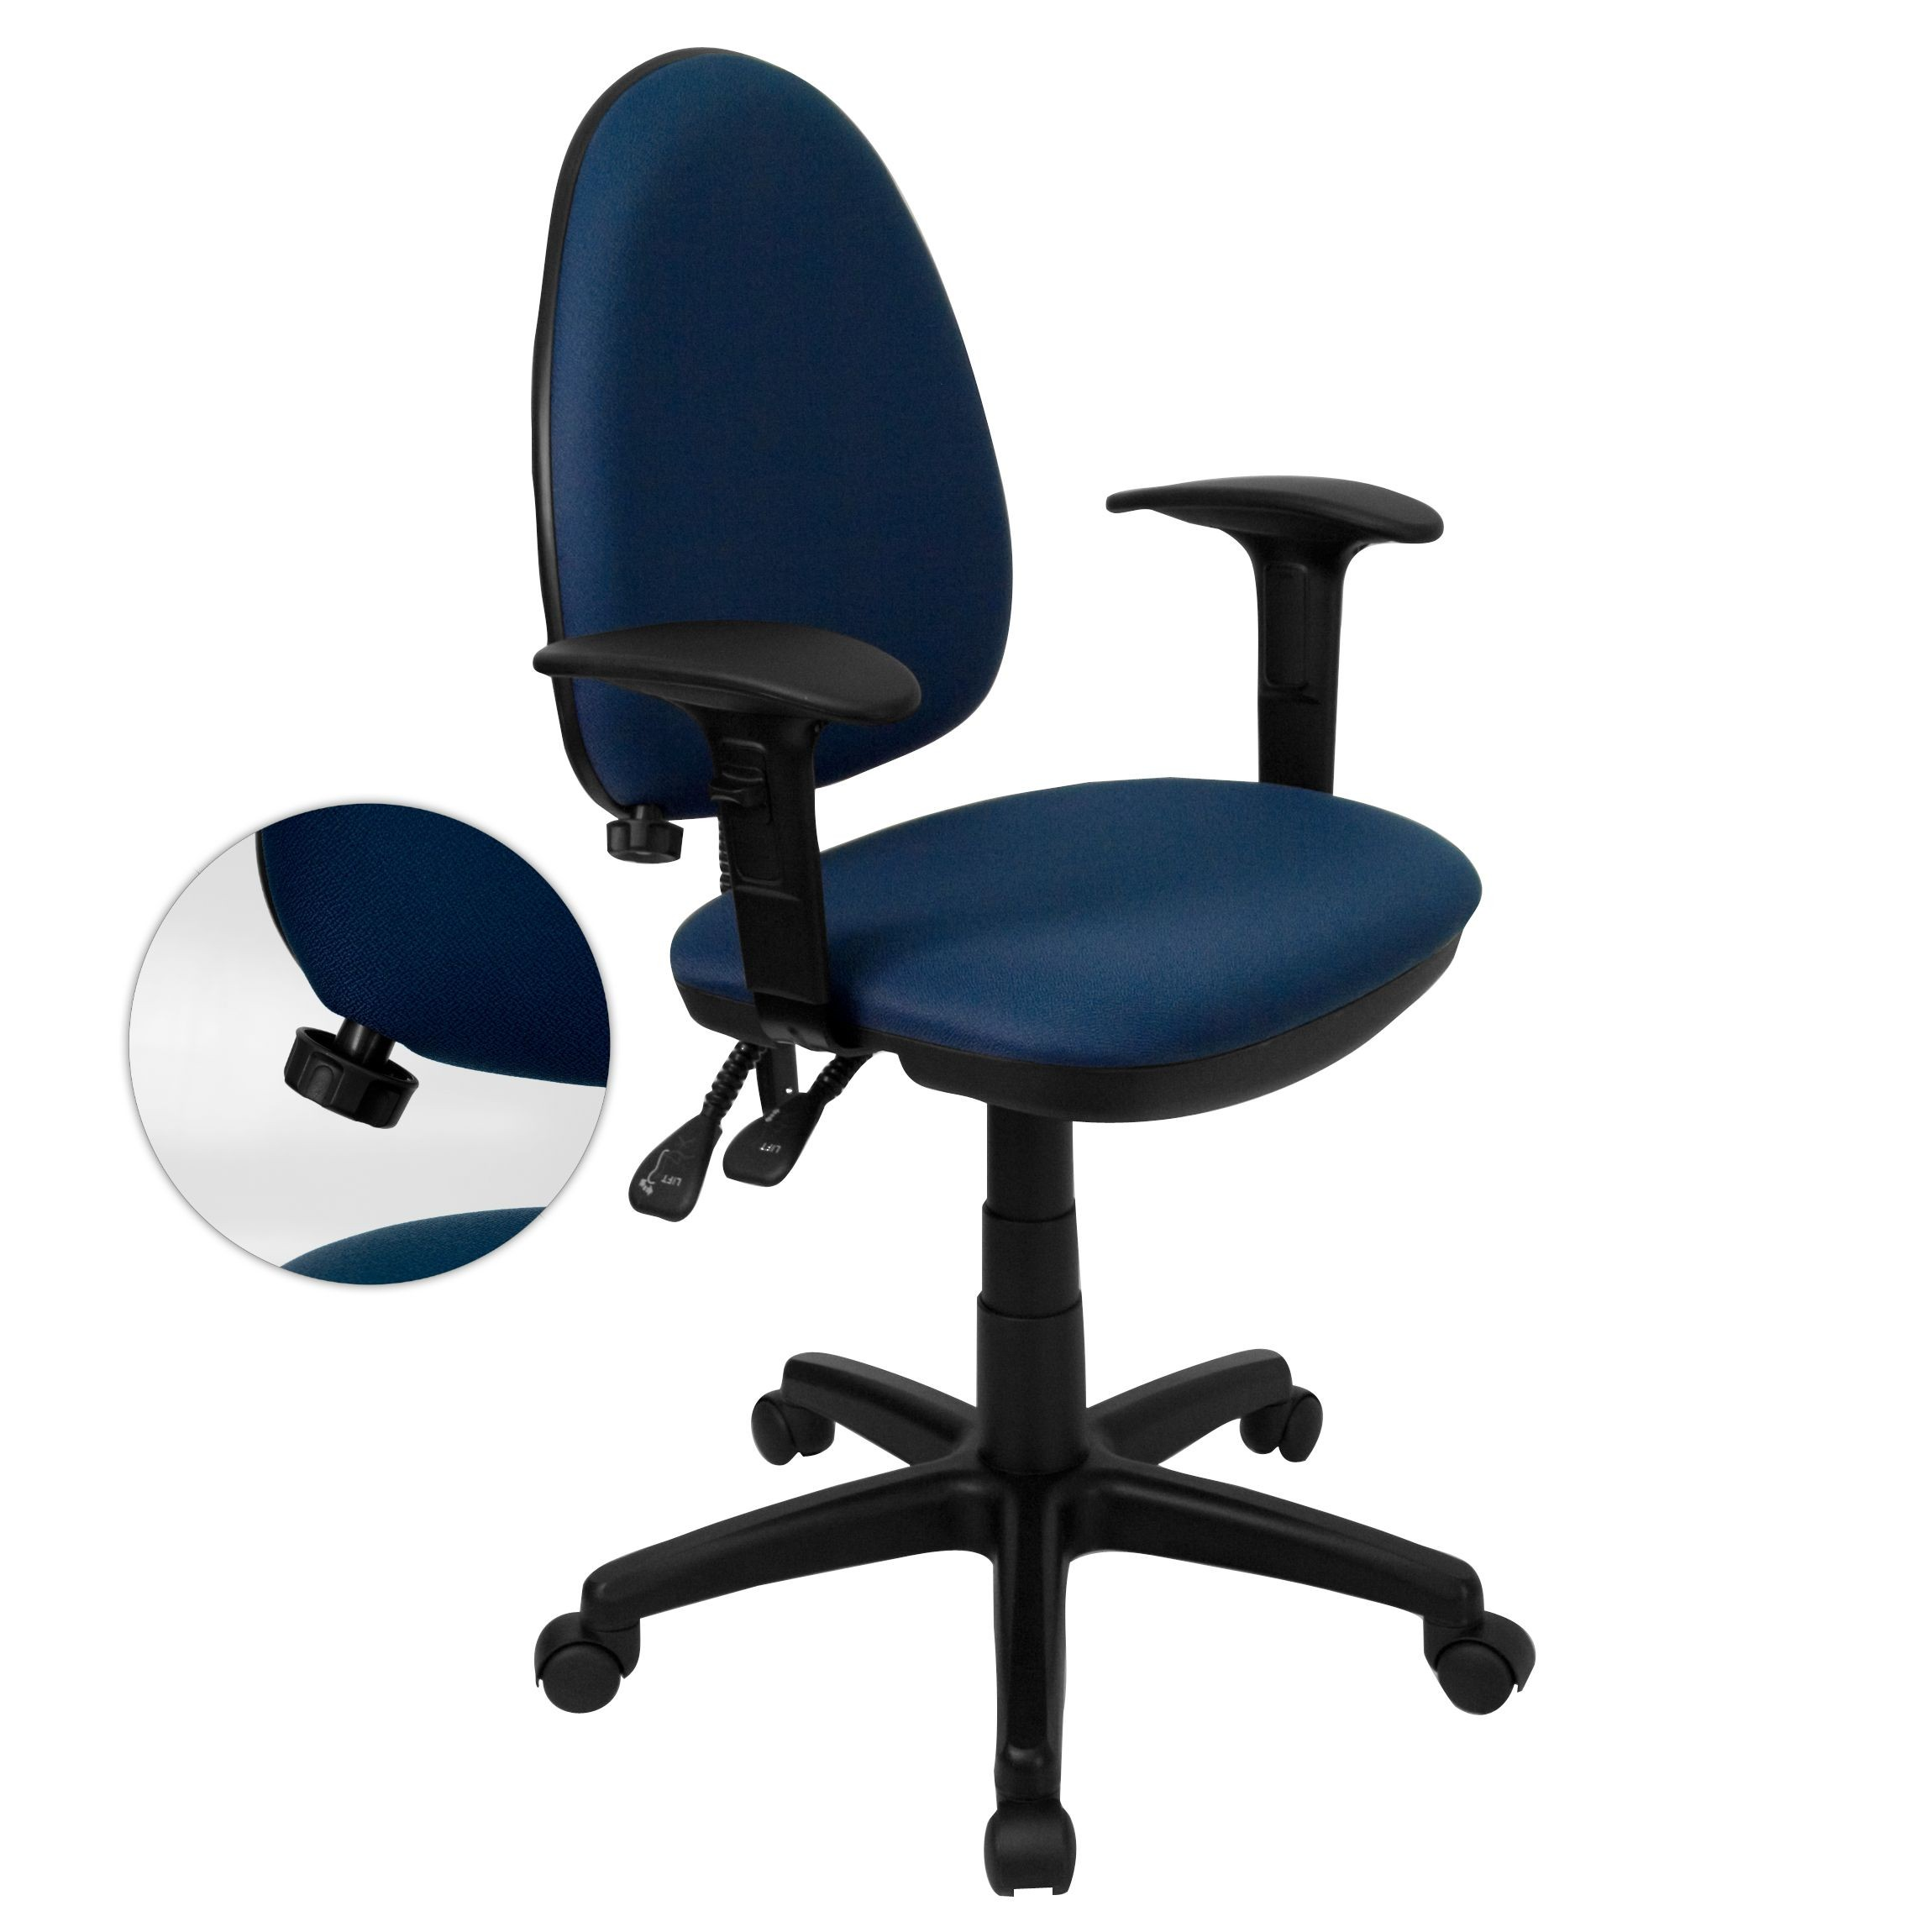 Flash Furniture WL-A654MG-NVY-A-GG Navy Blue Fabric Multi-Function Task Chair with Adjustable Lumbar Support and Arms